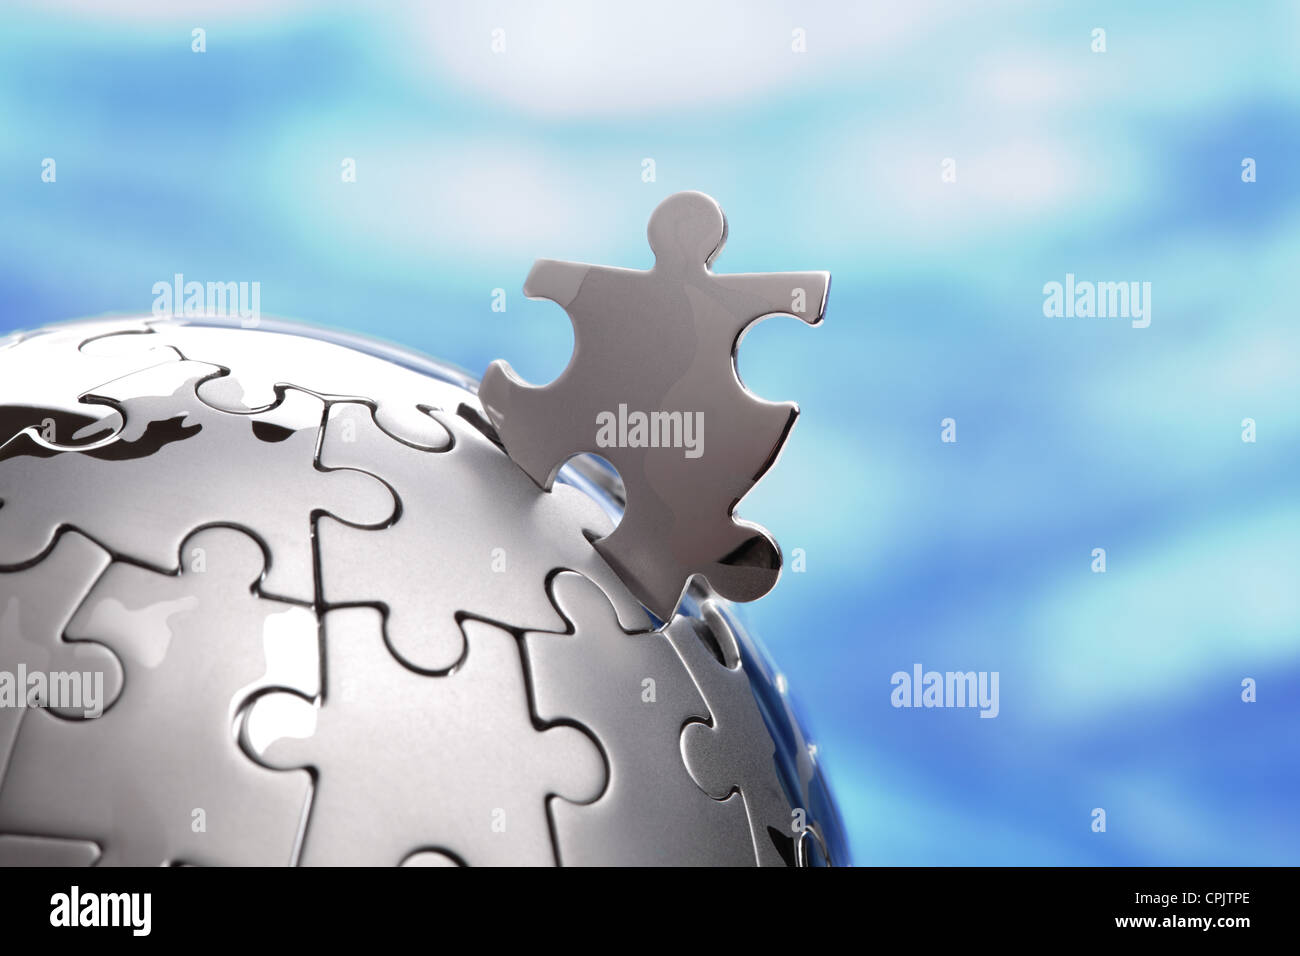 Global solution - Stock Image